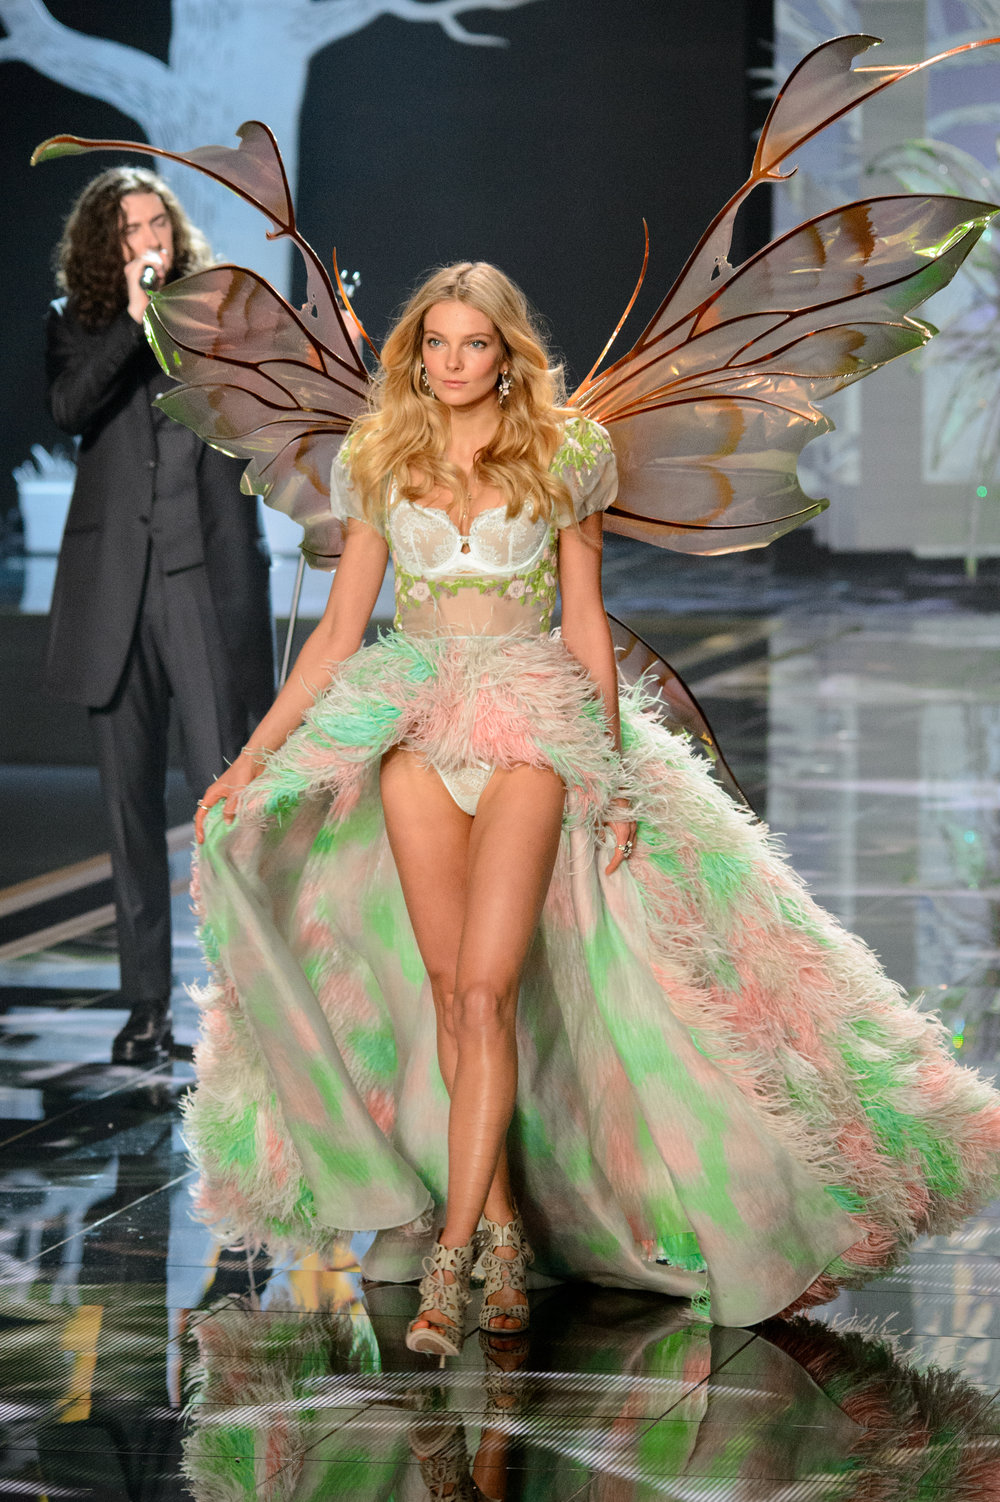 Eniko Mihalik in Giant Kira Fairy Wings at the VS Fashion Show 2014